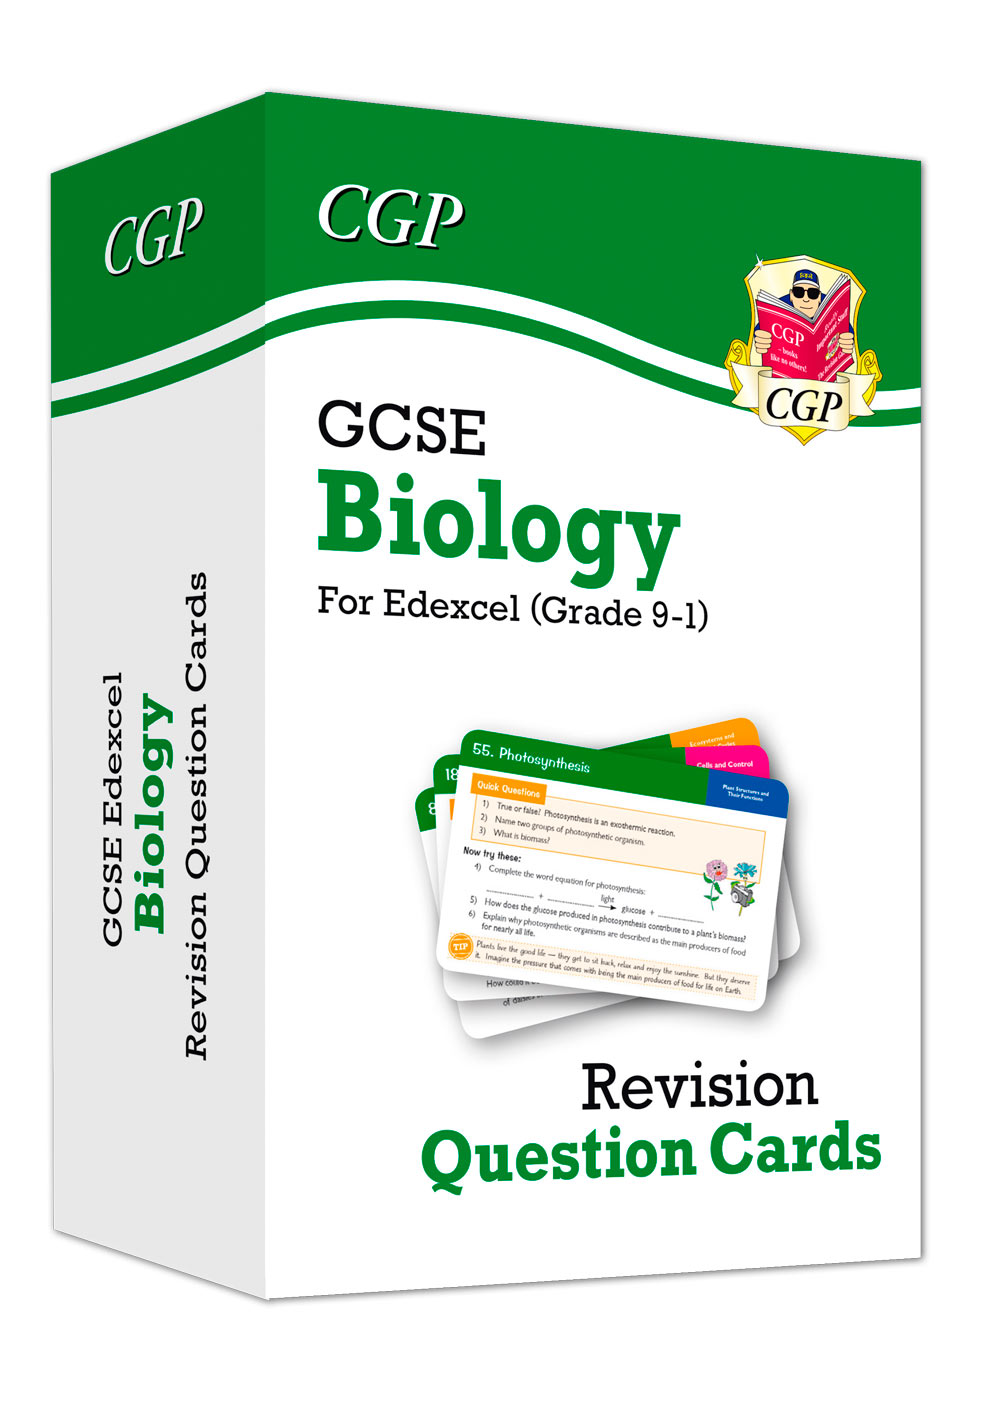 BEF41 - New 9-1 GCSE Biology Edexcel Revision Question Cards